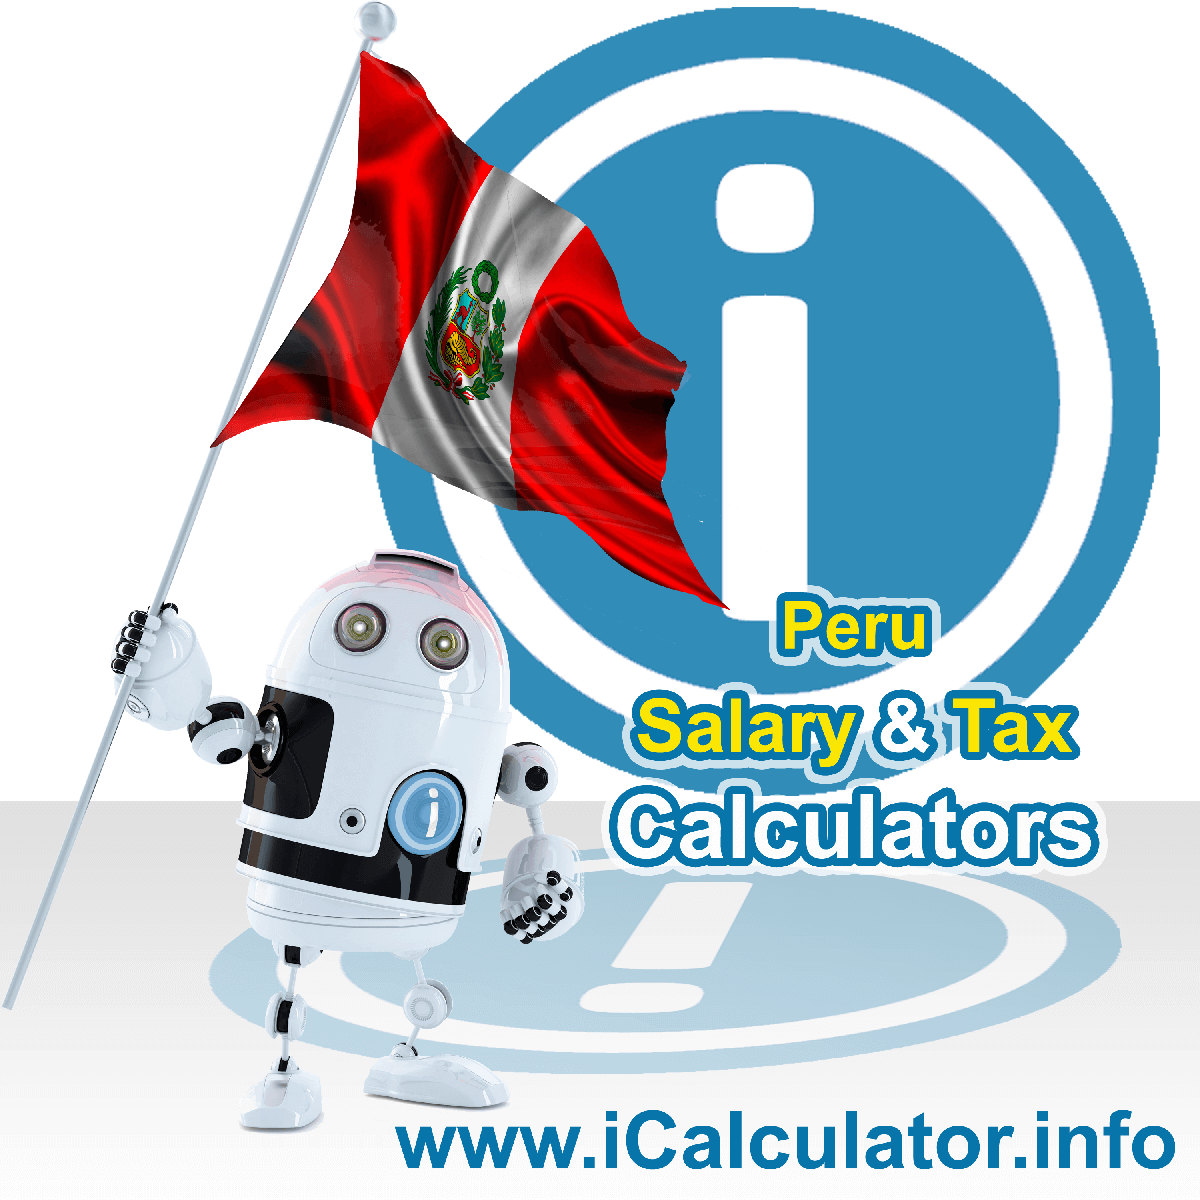 Peru Wage Calculator. This image shows the Peru flag and information relating to the tax formula for the Peru Tax Calculator